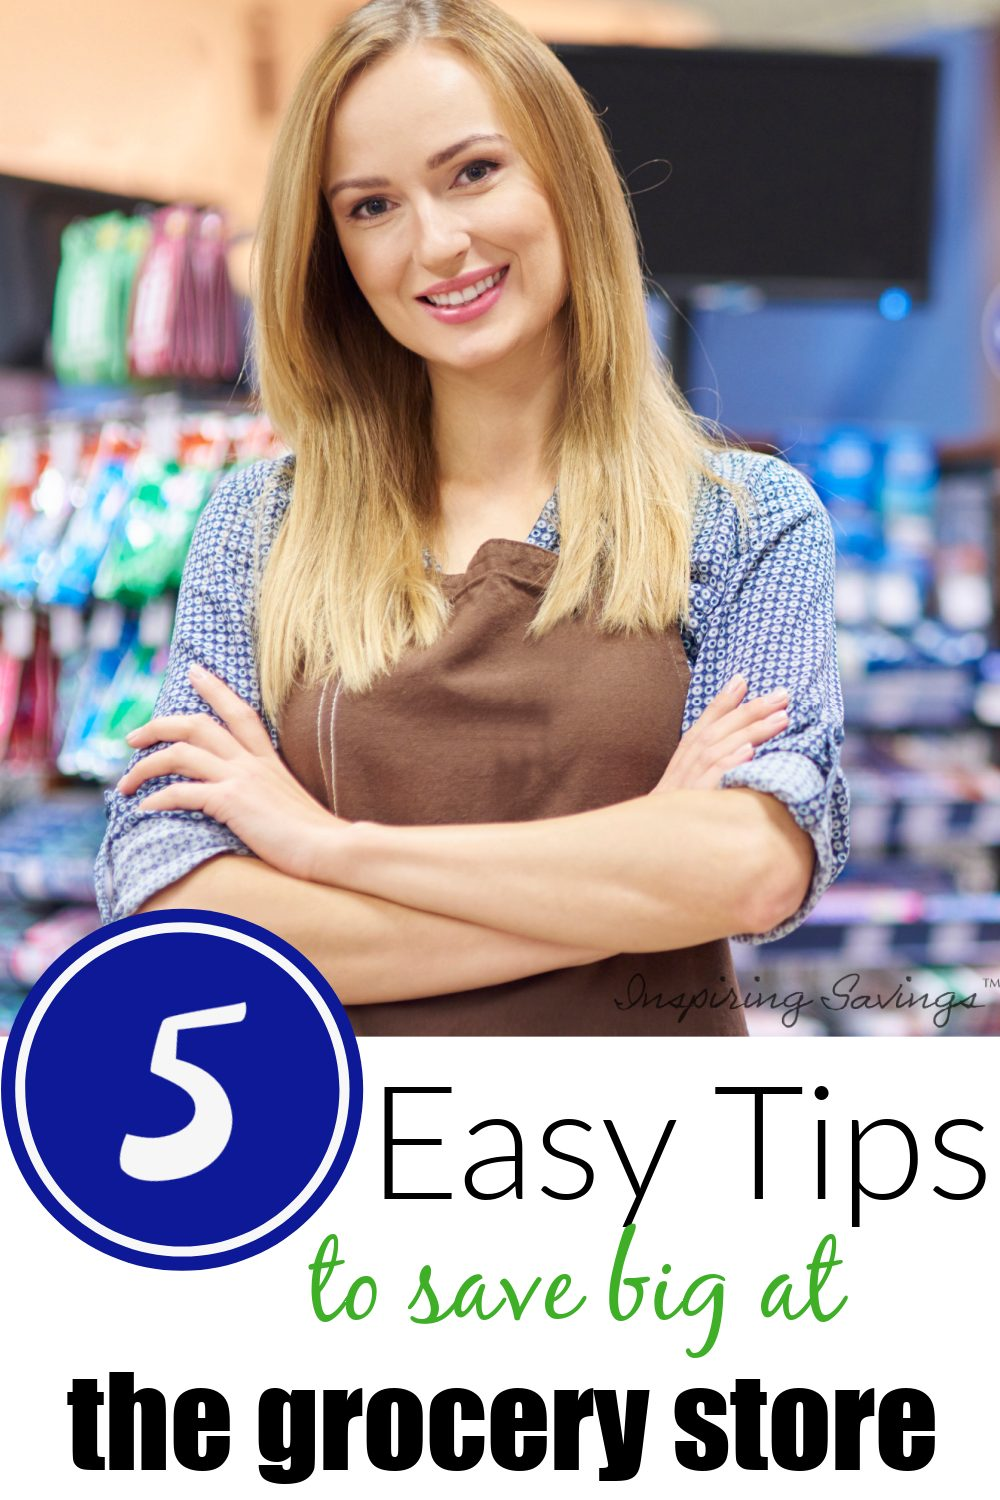 woman folding arm at the grocery store - easy tips to save big at the grocery store